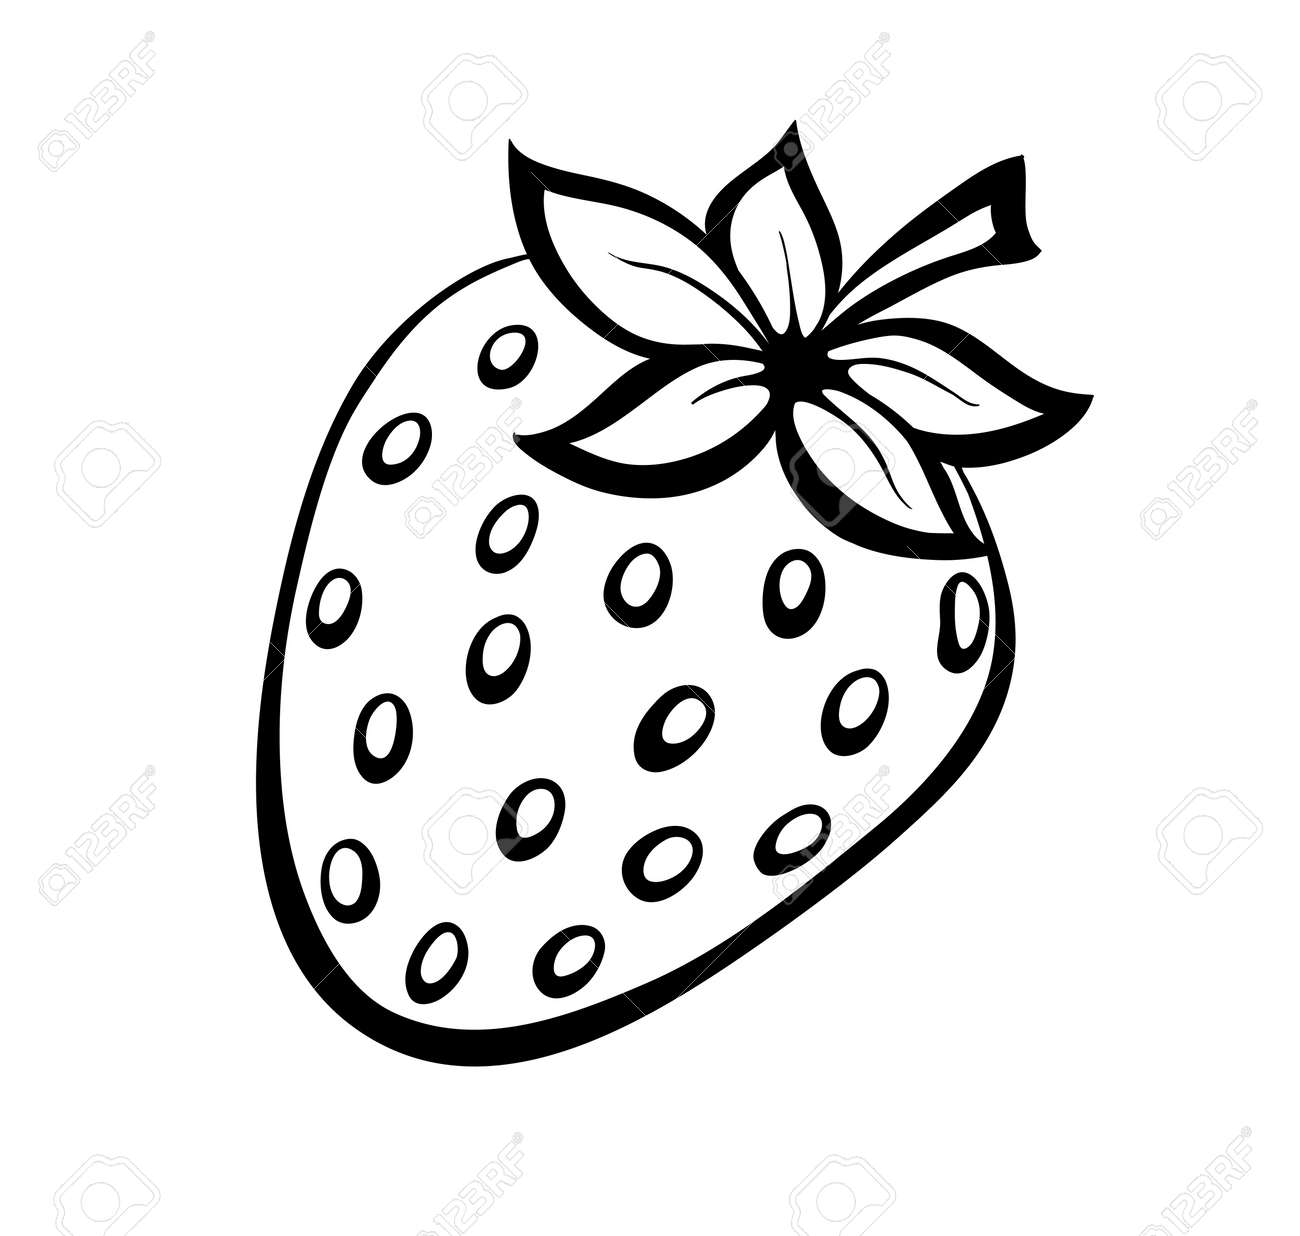 monochrome illustration of strawberries . Many similarities to the author's profile - 22028250